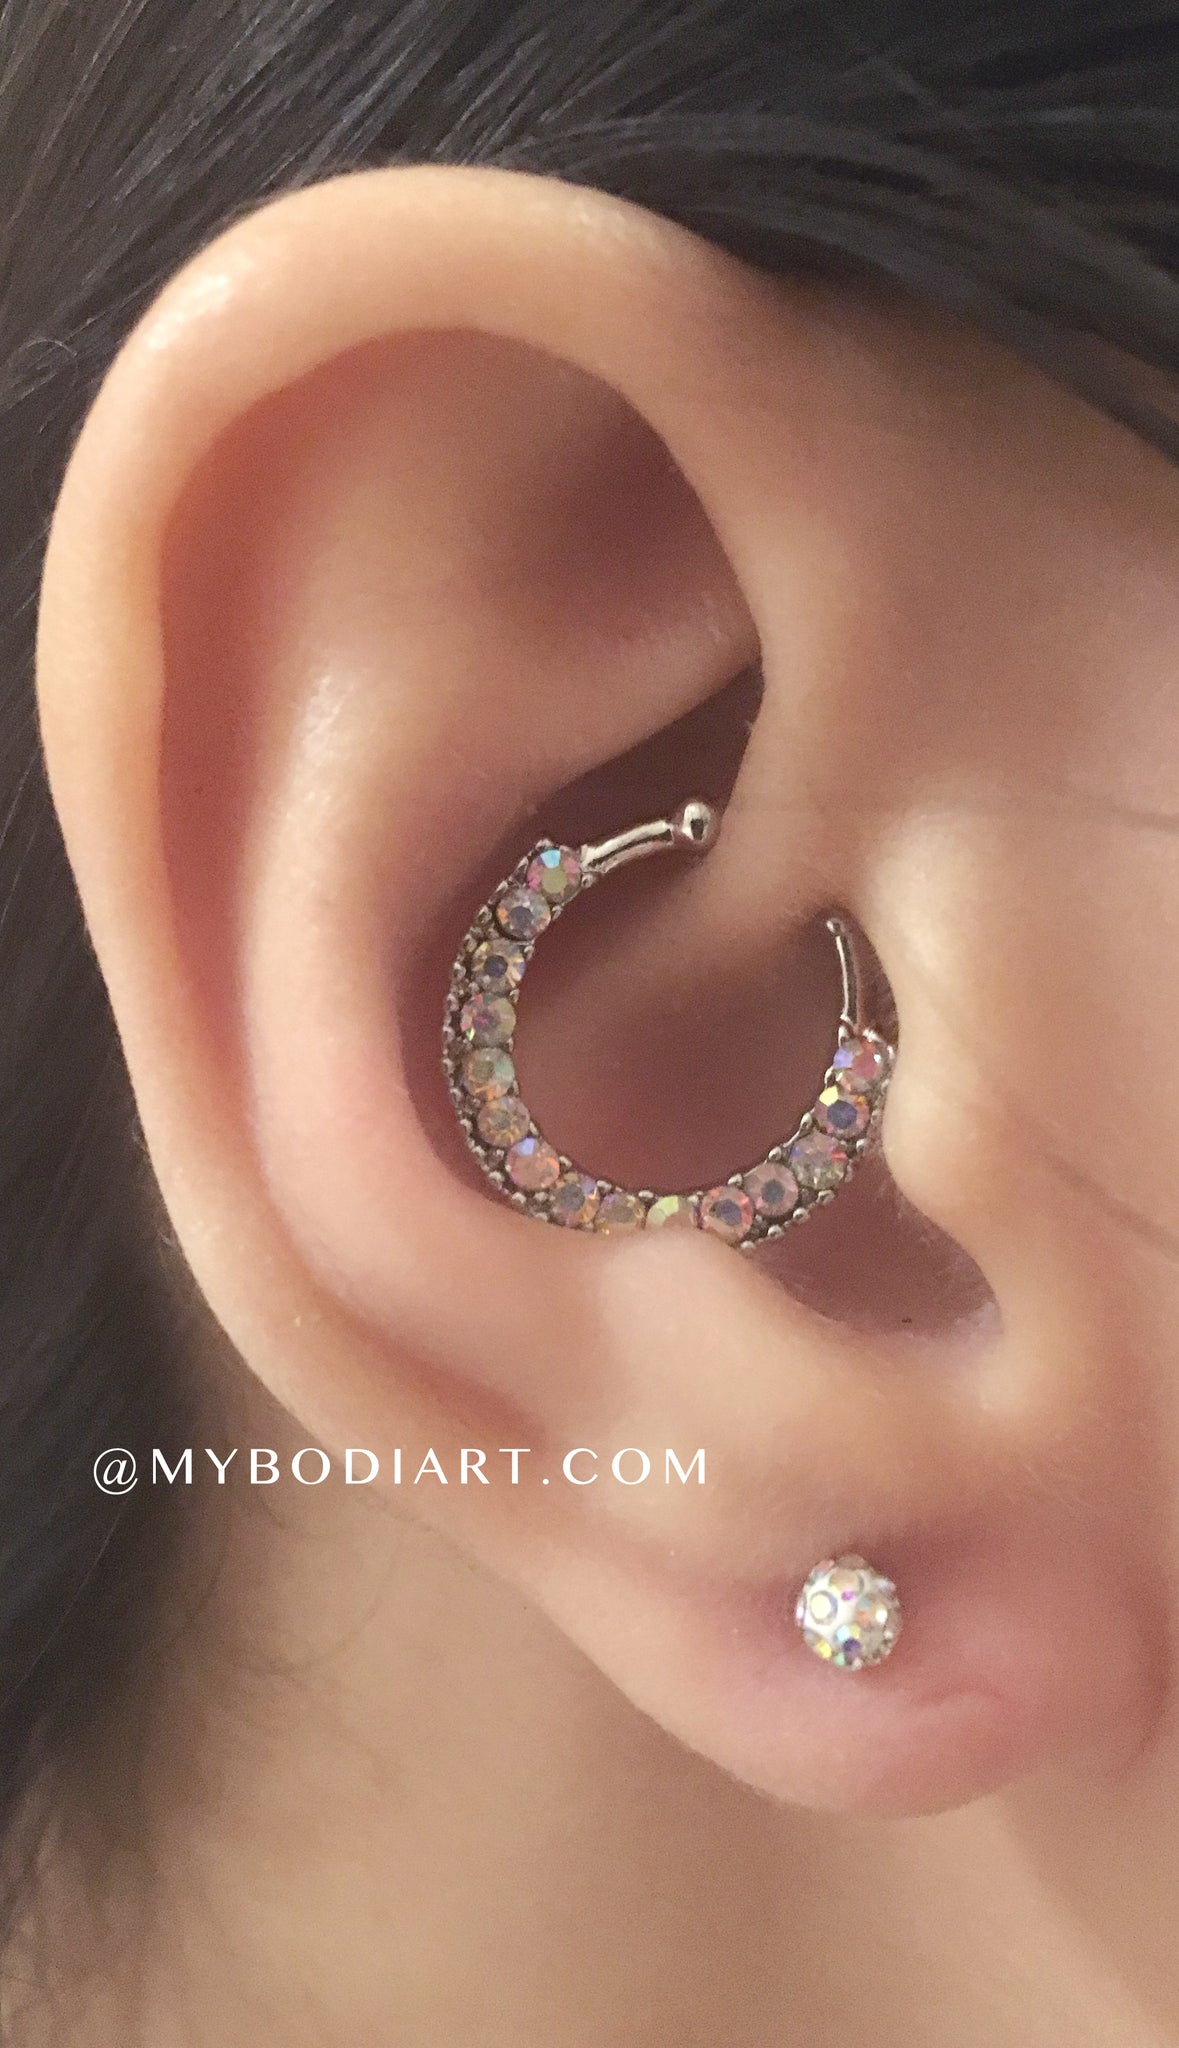 Adorable Girly Ear Piercing Ideas for Teenage Girls - la perforación del oído ideas chicas - www.MyBodiArt.com